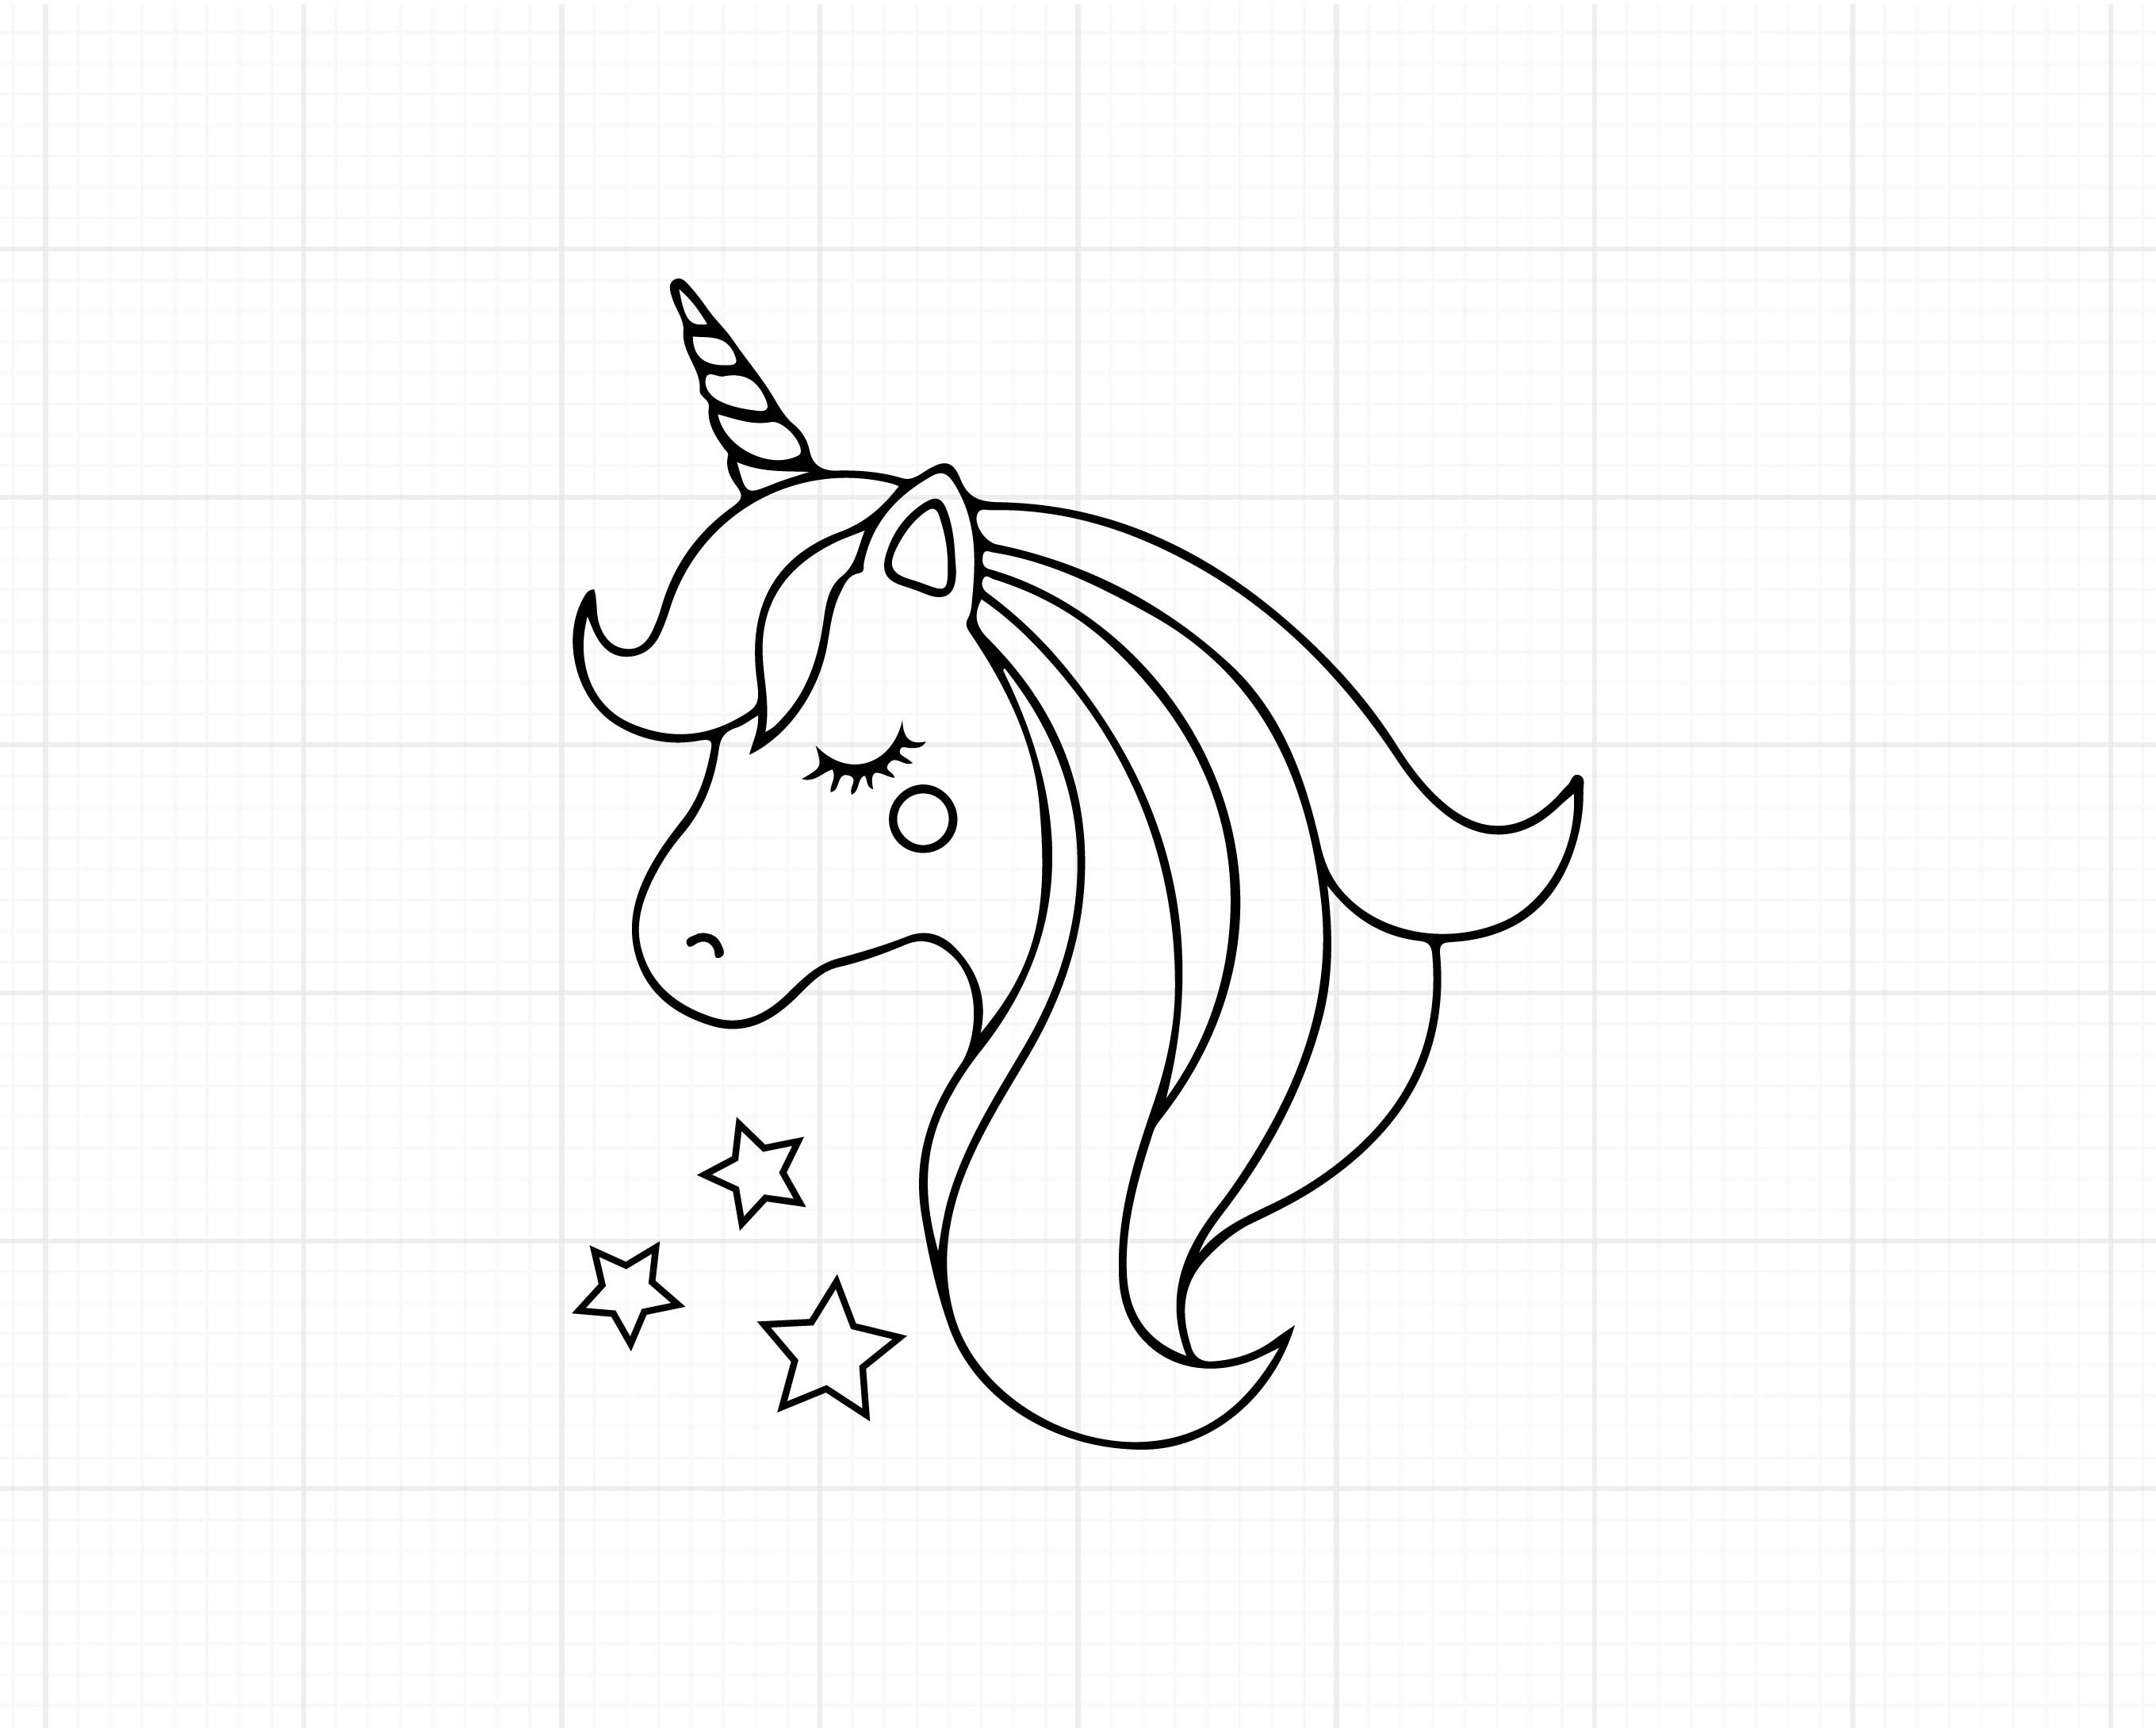 SVG Eps Unicorn Drawing Vector Clipart Set  Outline /& Silhouette Drawing Illustrations  Fantasy  PNG JPG